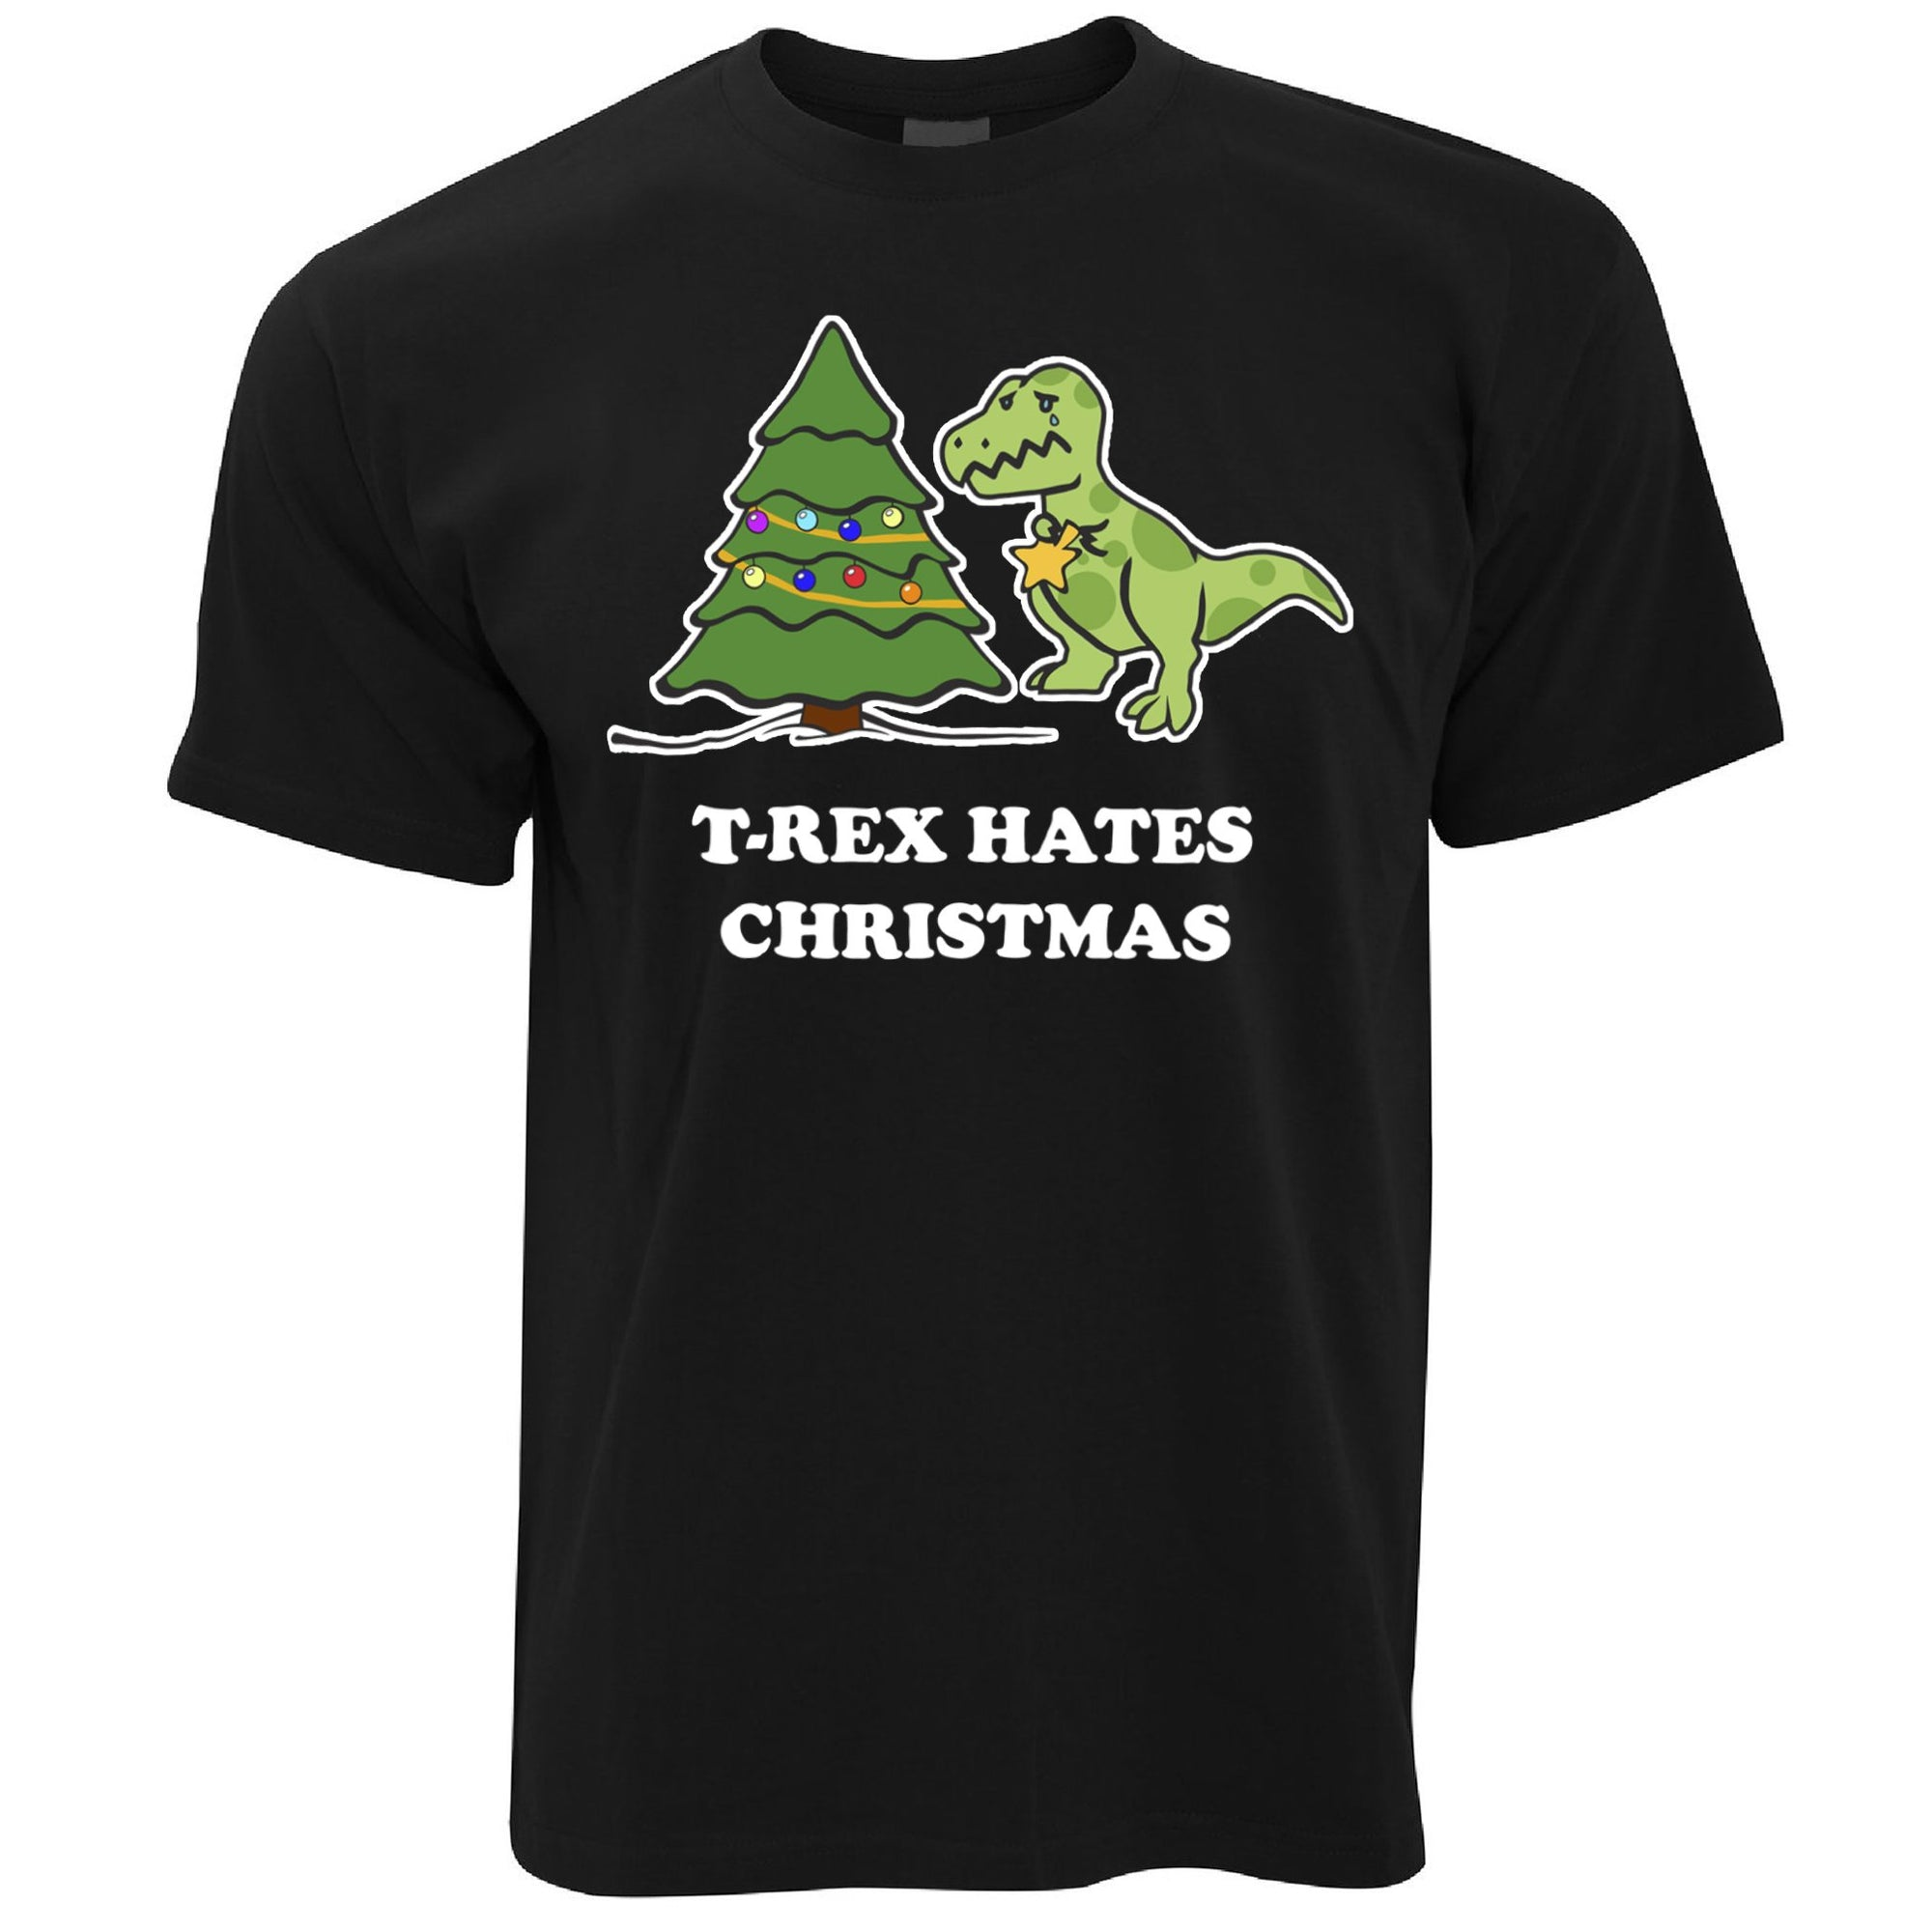 Novelty Xmas T Shirt T-Rex Hates Christmas Joke